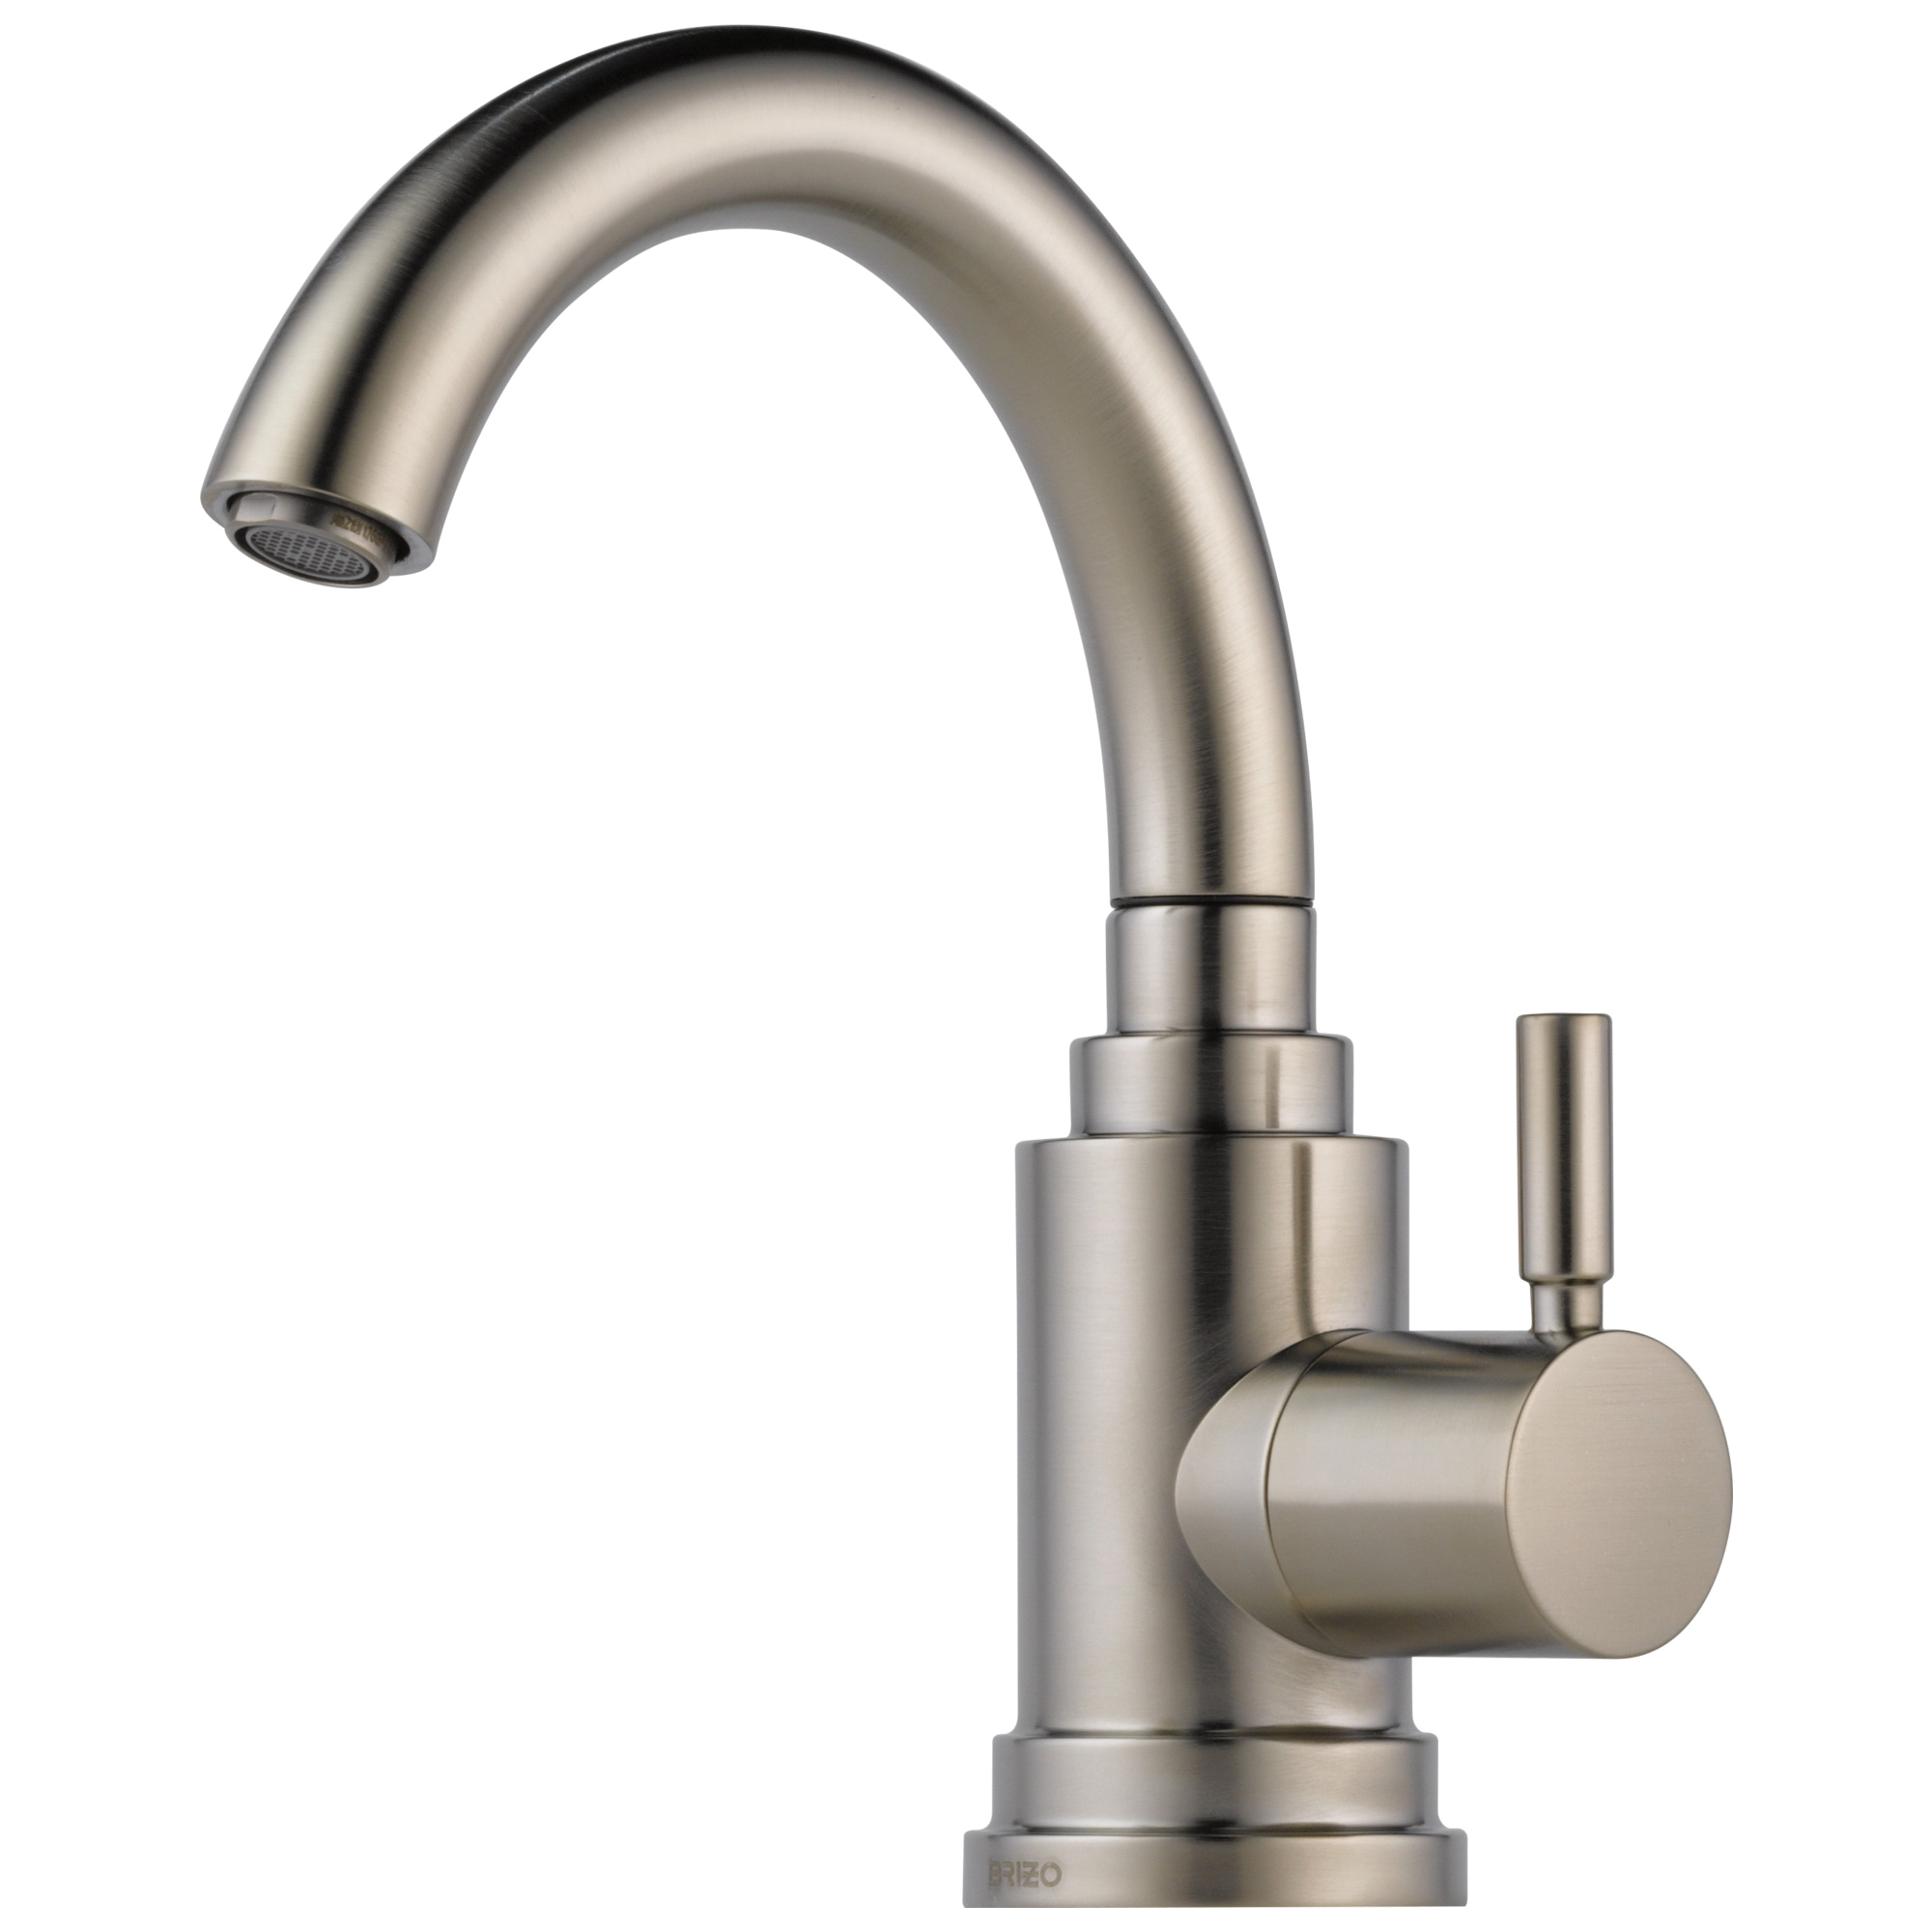 Brizo® 61320LF-SS Euro Beverage Faucet, 1.5 gpm Flow Rate, Stainless Steel, 1 Handles, Domestic